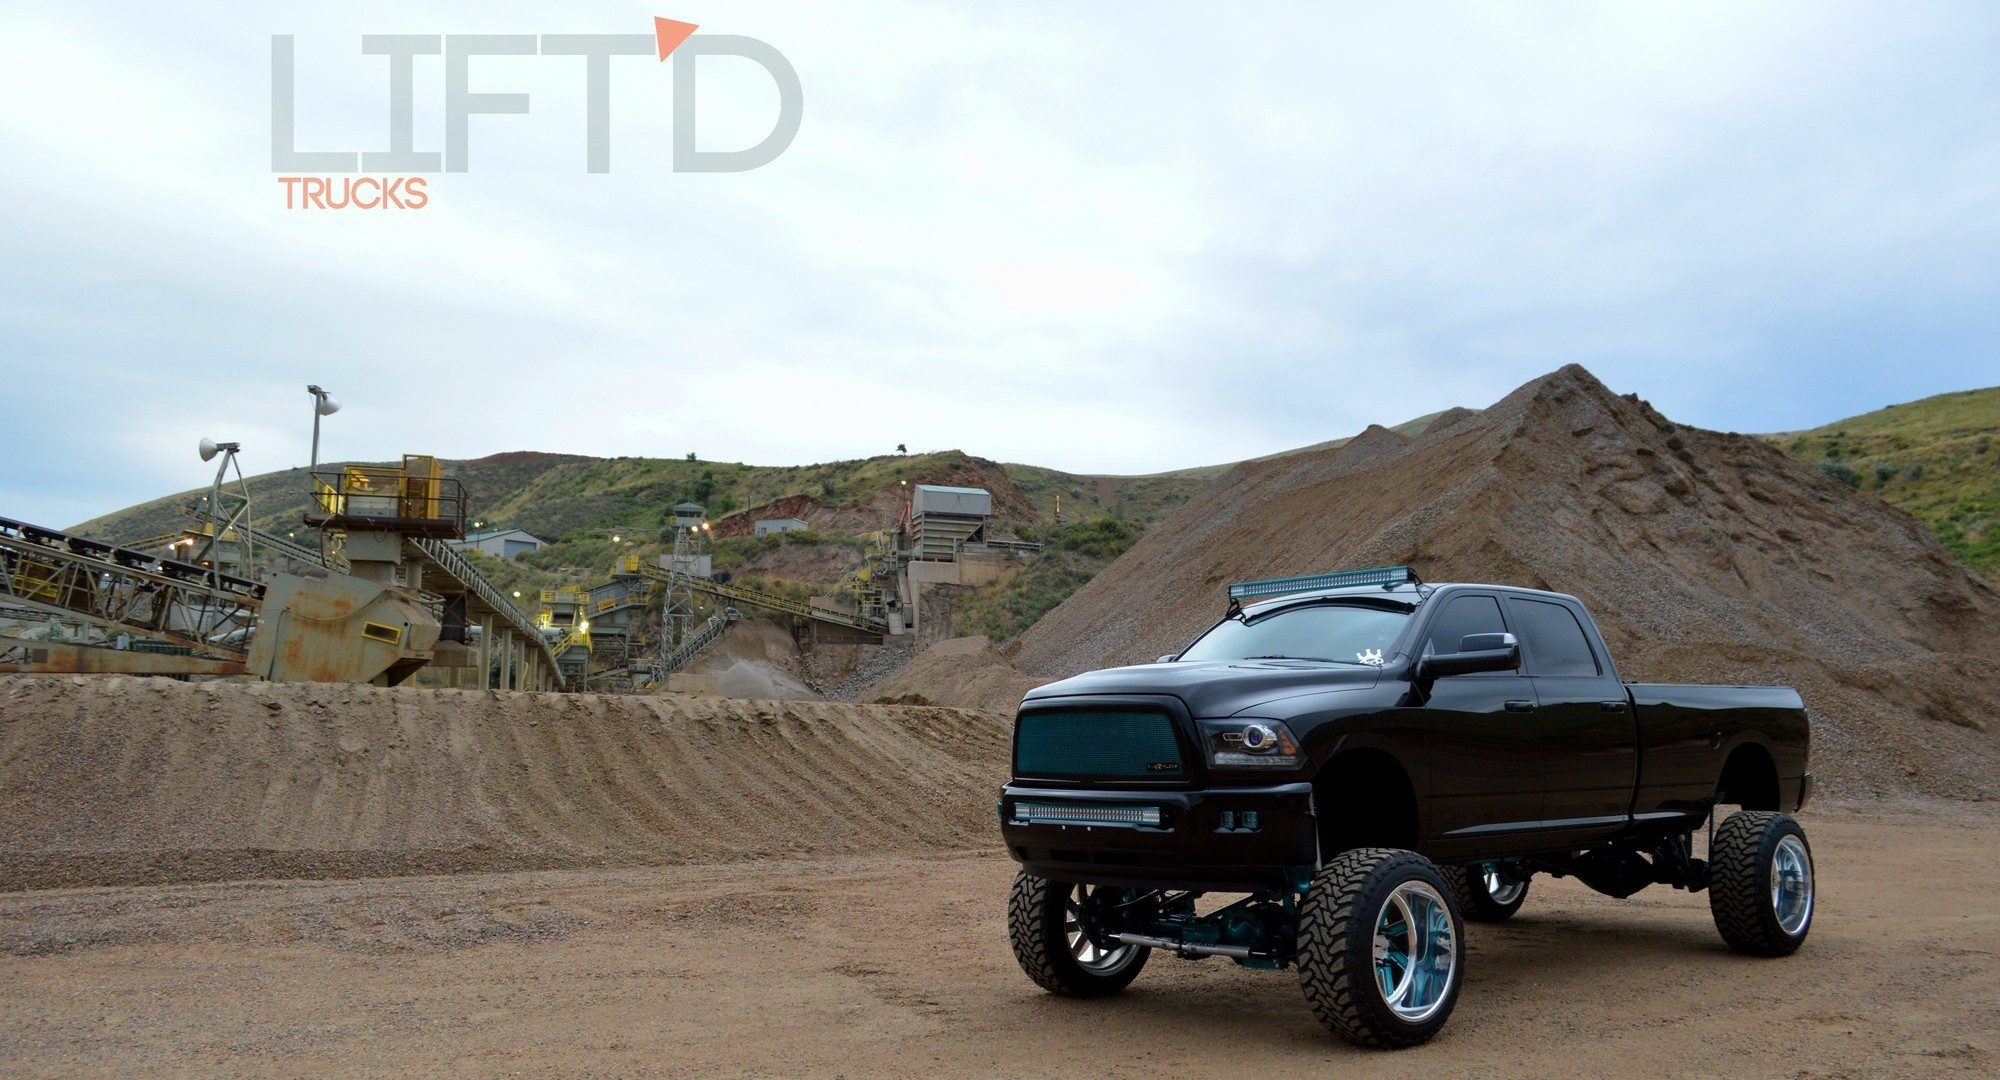 Mint chocolate mike lankfords high altitude 2014 ram 2500 lift the exterior lighting including a couple of rigid industries light bars two sets of rigids d2 duallies and under glow effects follow suit mozeypictures Gallery